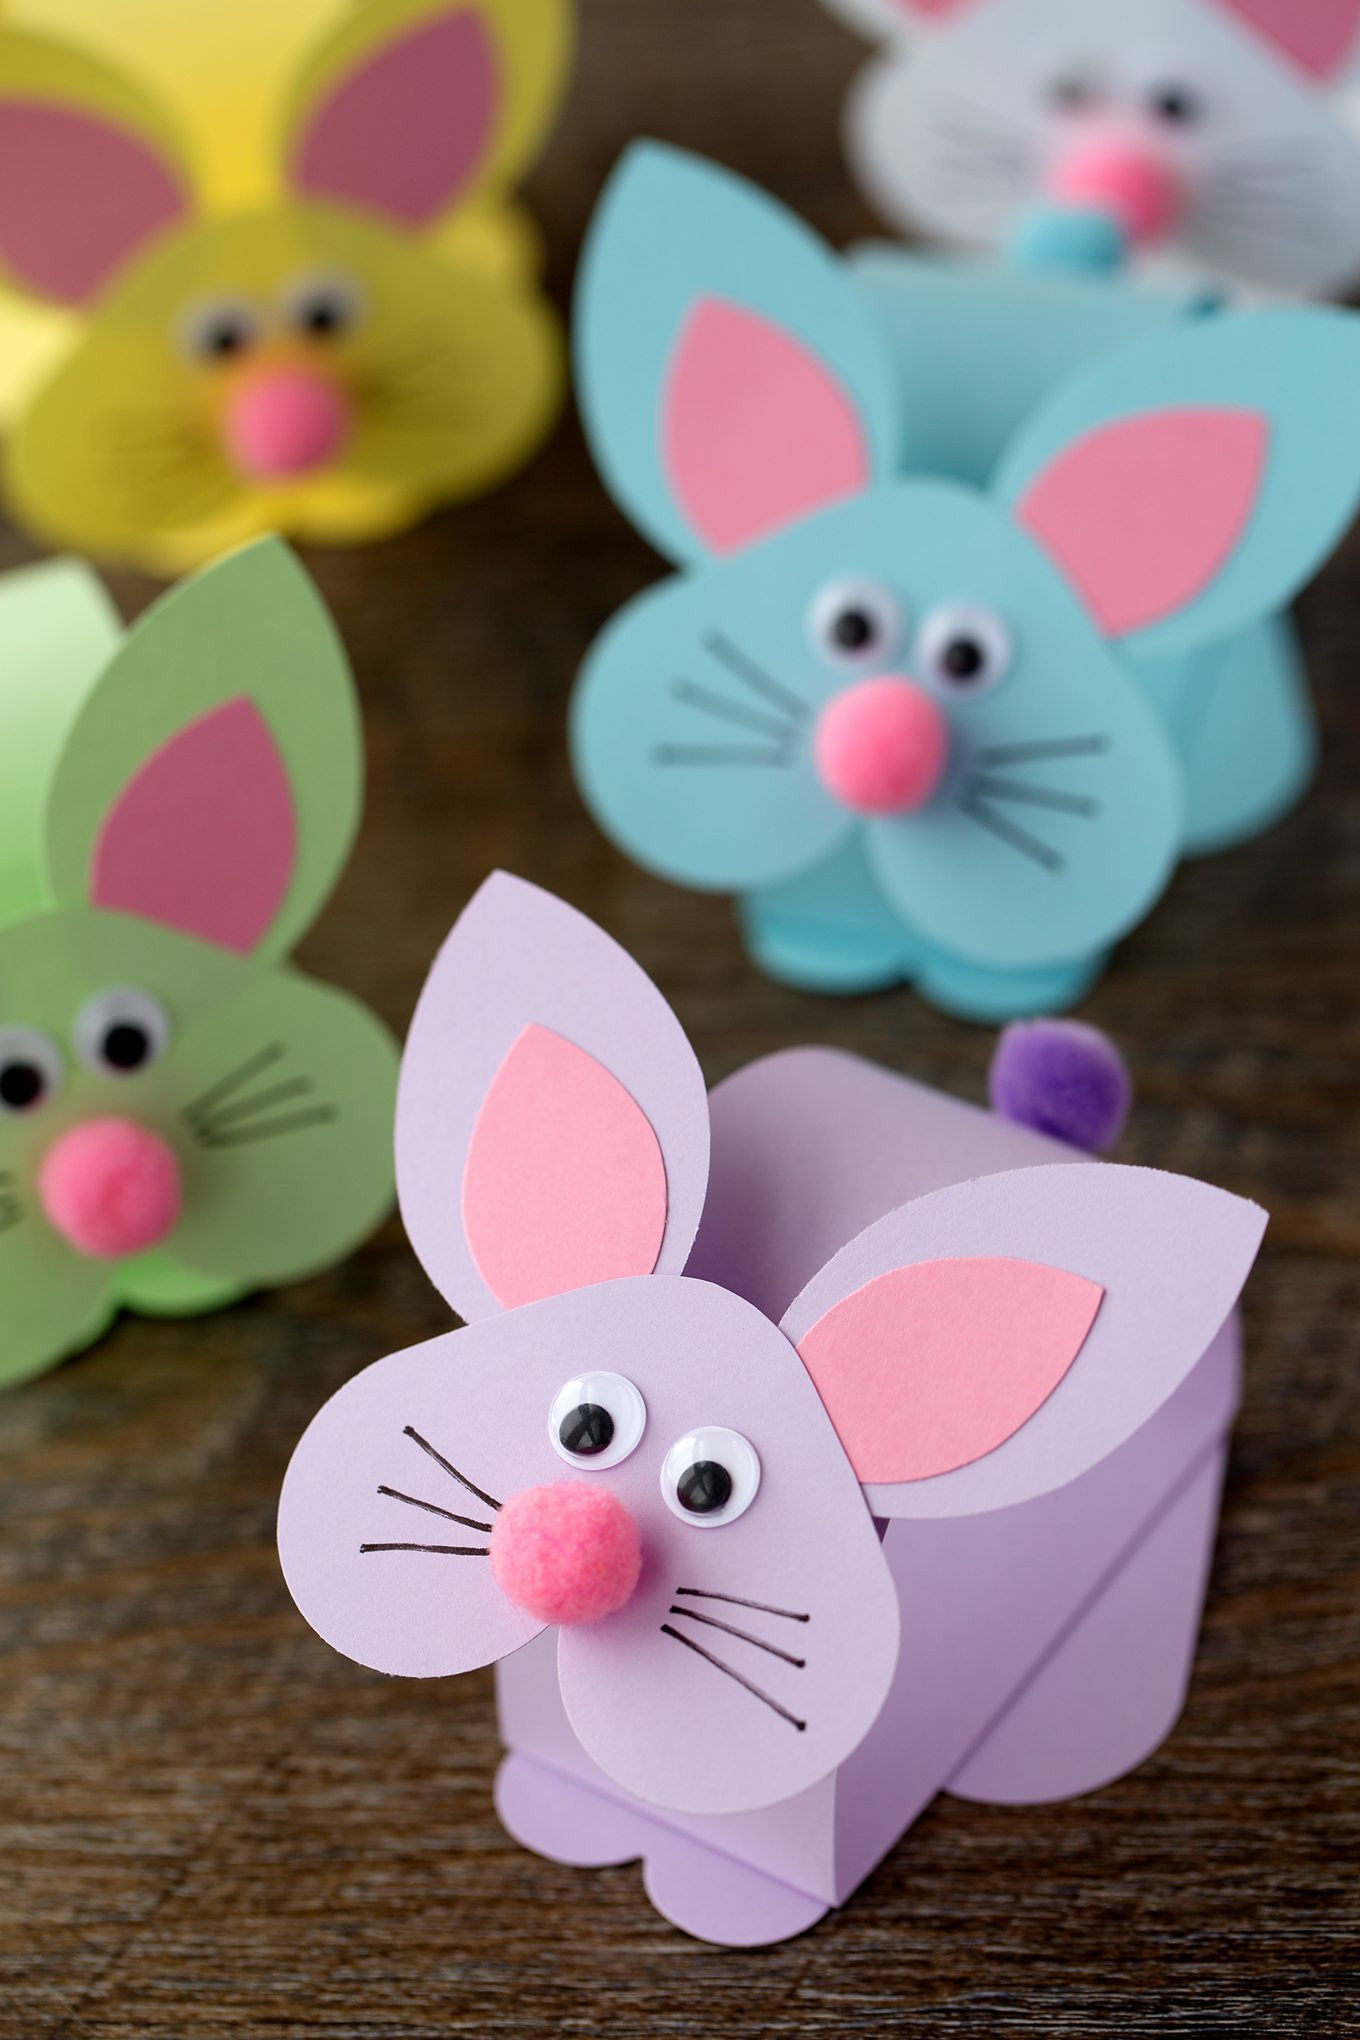 Best ideas about Craft Ideas For Kids With Paper . Save or Pin Paper Bobble Head Bunny Craft for Kids Now.